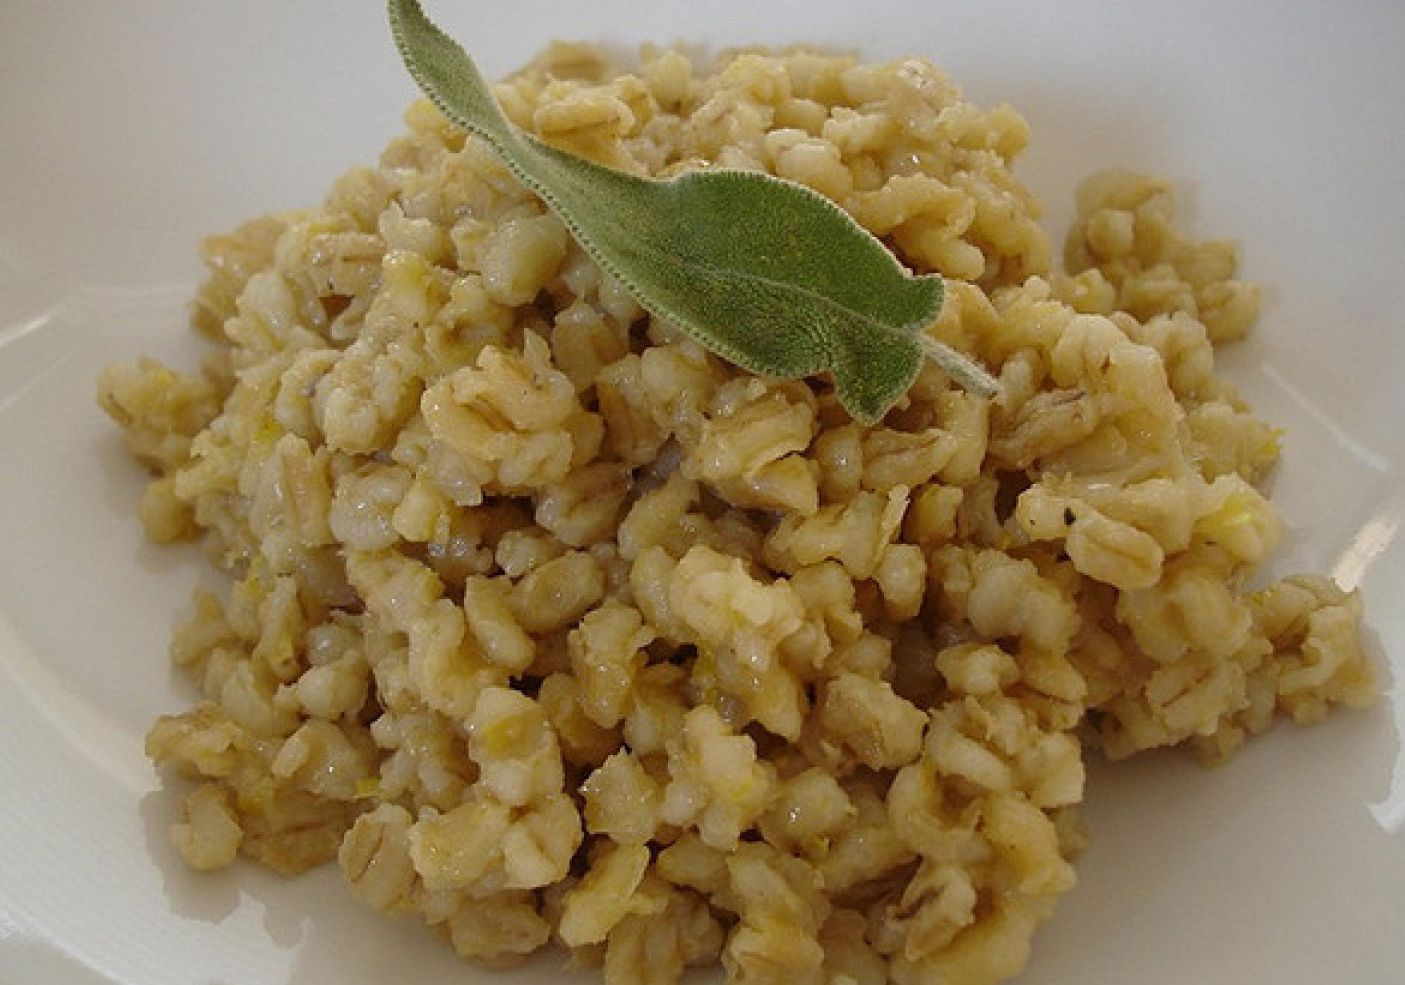 Barley grits: the benefits and harm. Barley grain from what is produced 100